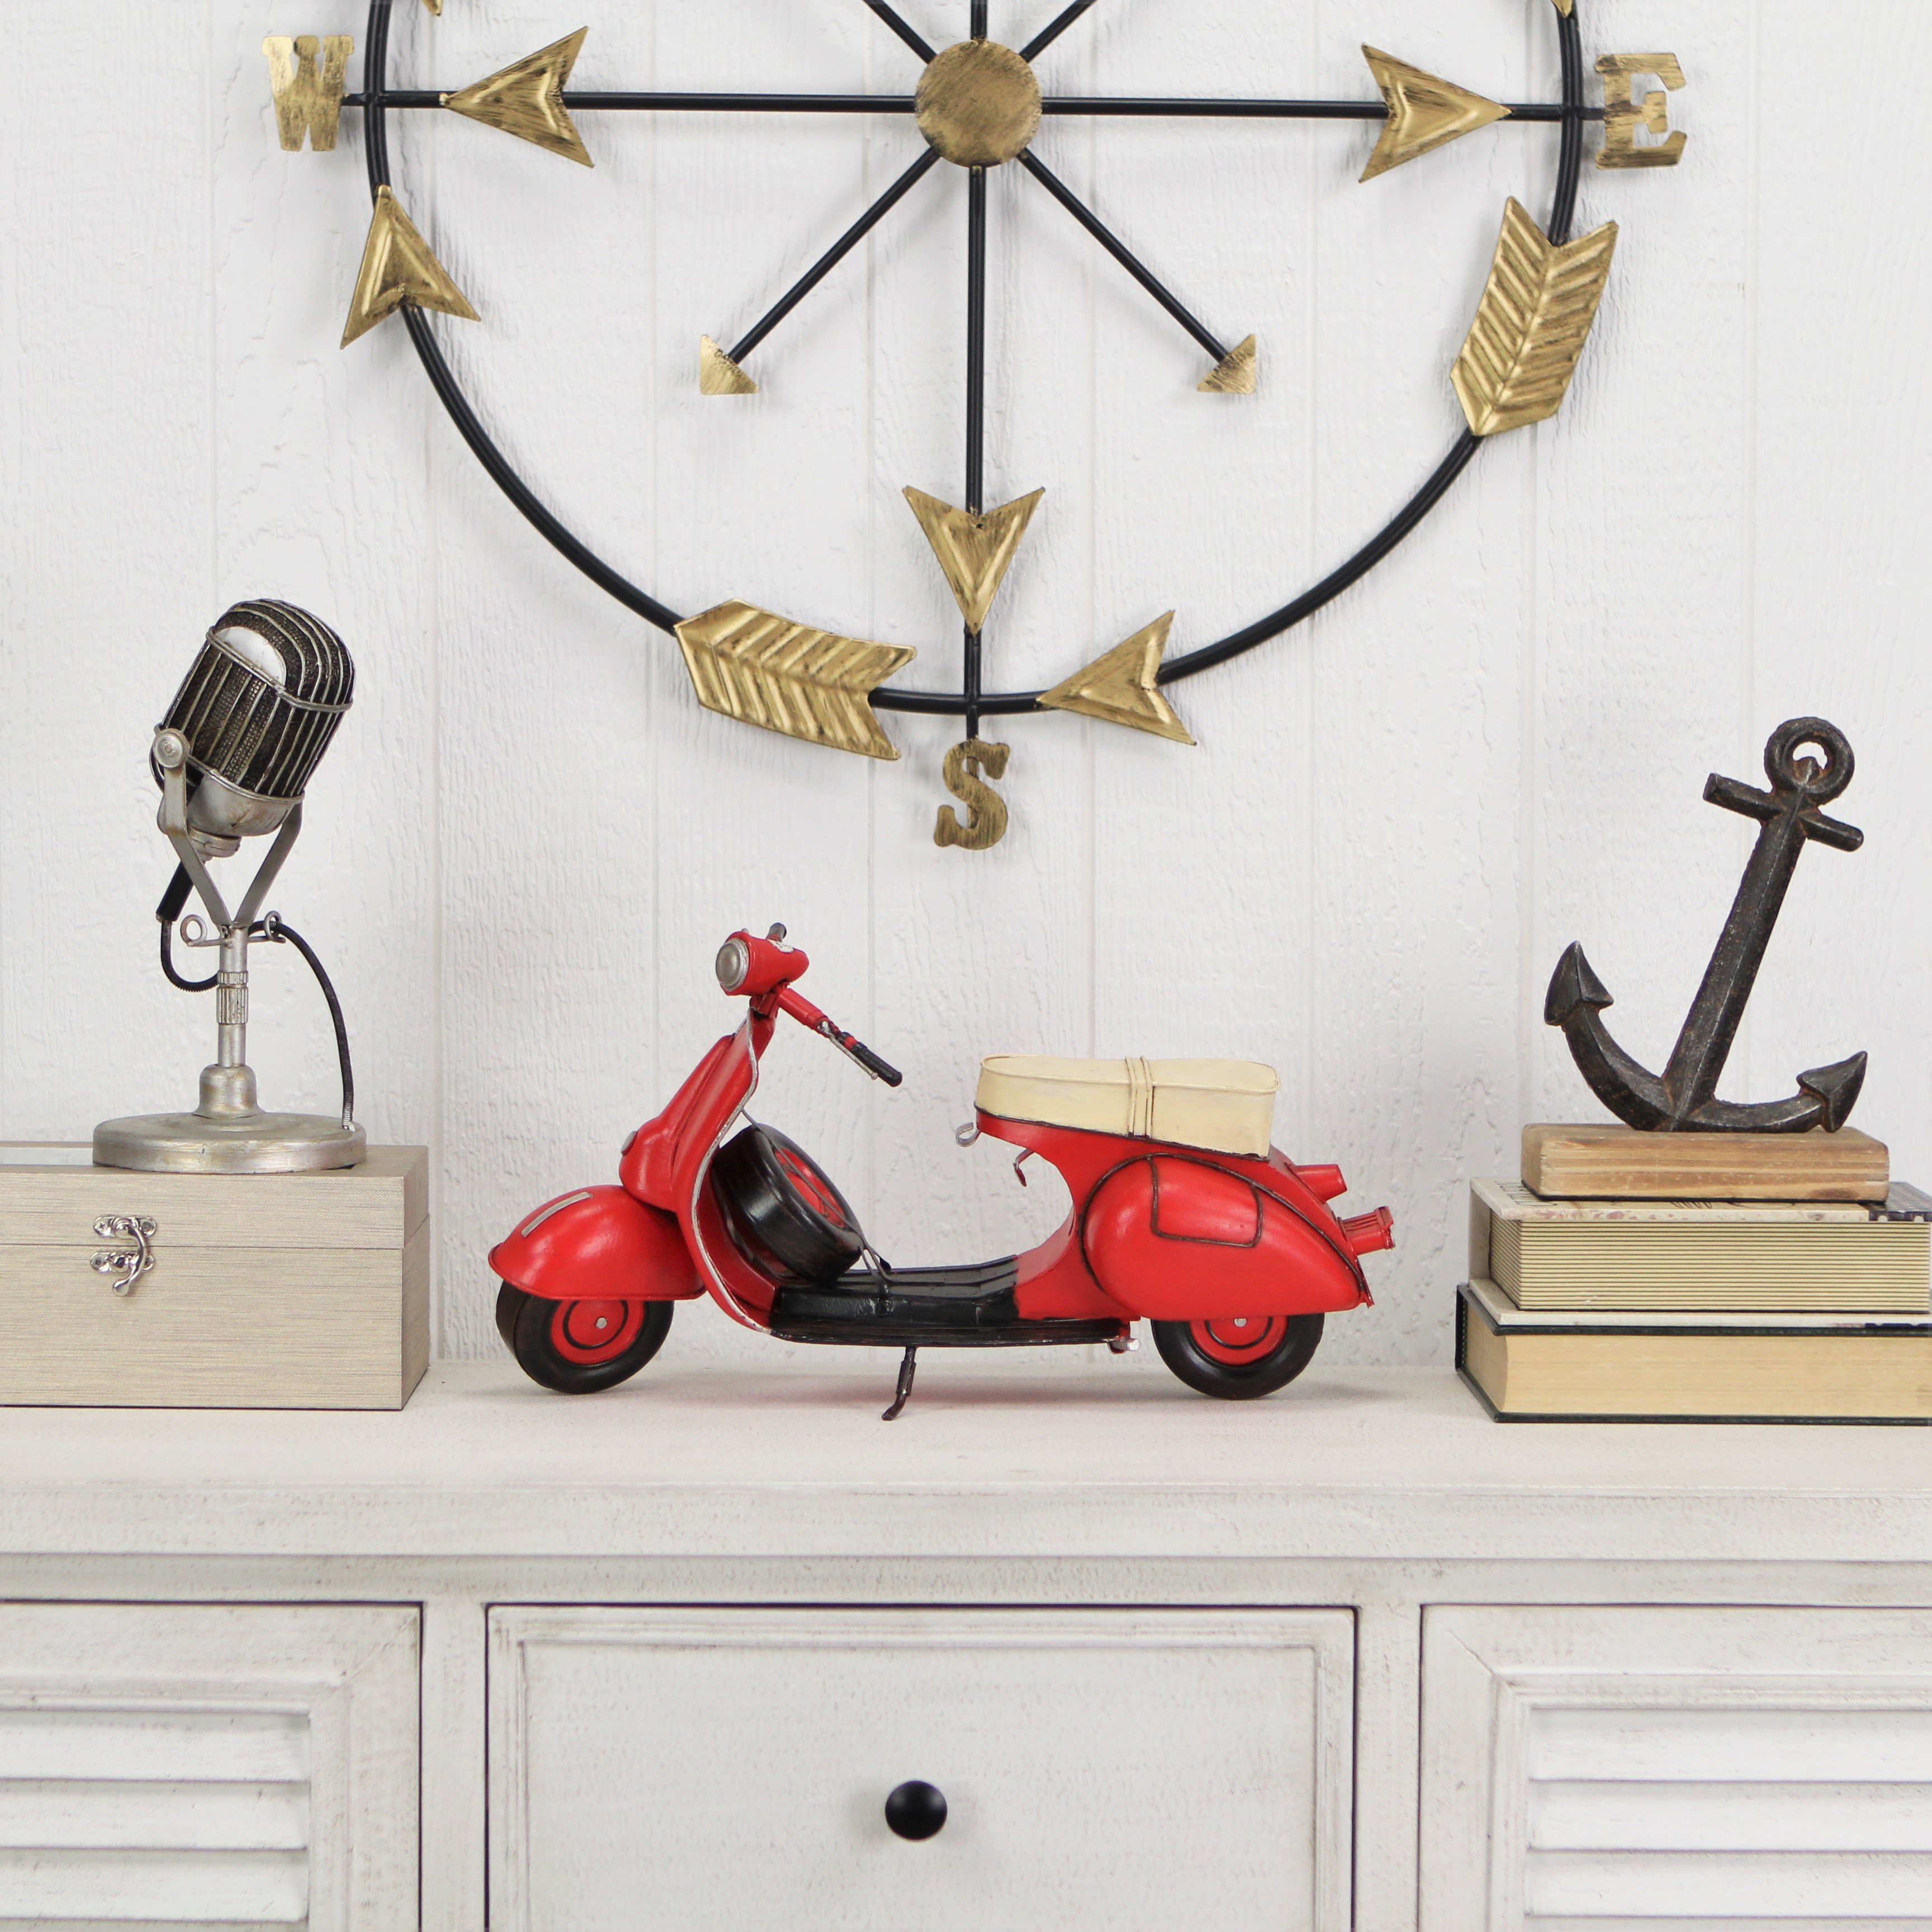 CheungsRattan JA-0313R Decorative Scooter Motor Cycle - Red